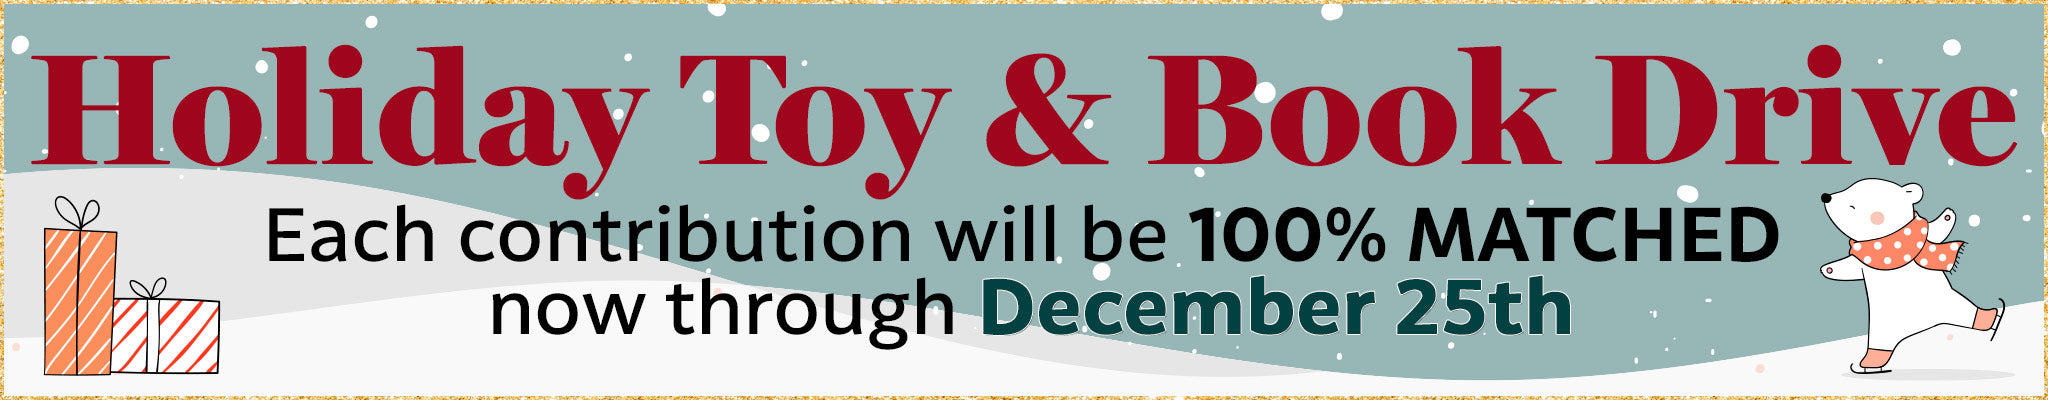 Holiday Toy & Book Drive | Each contribution will be 100% matched now through December 25th!